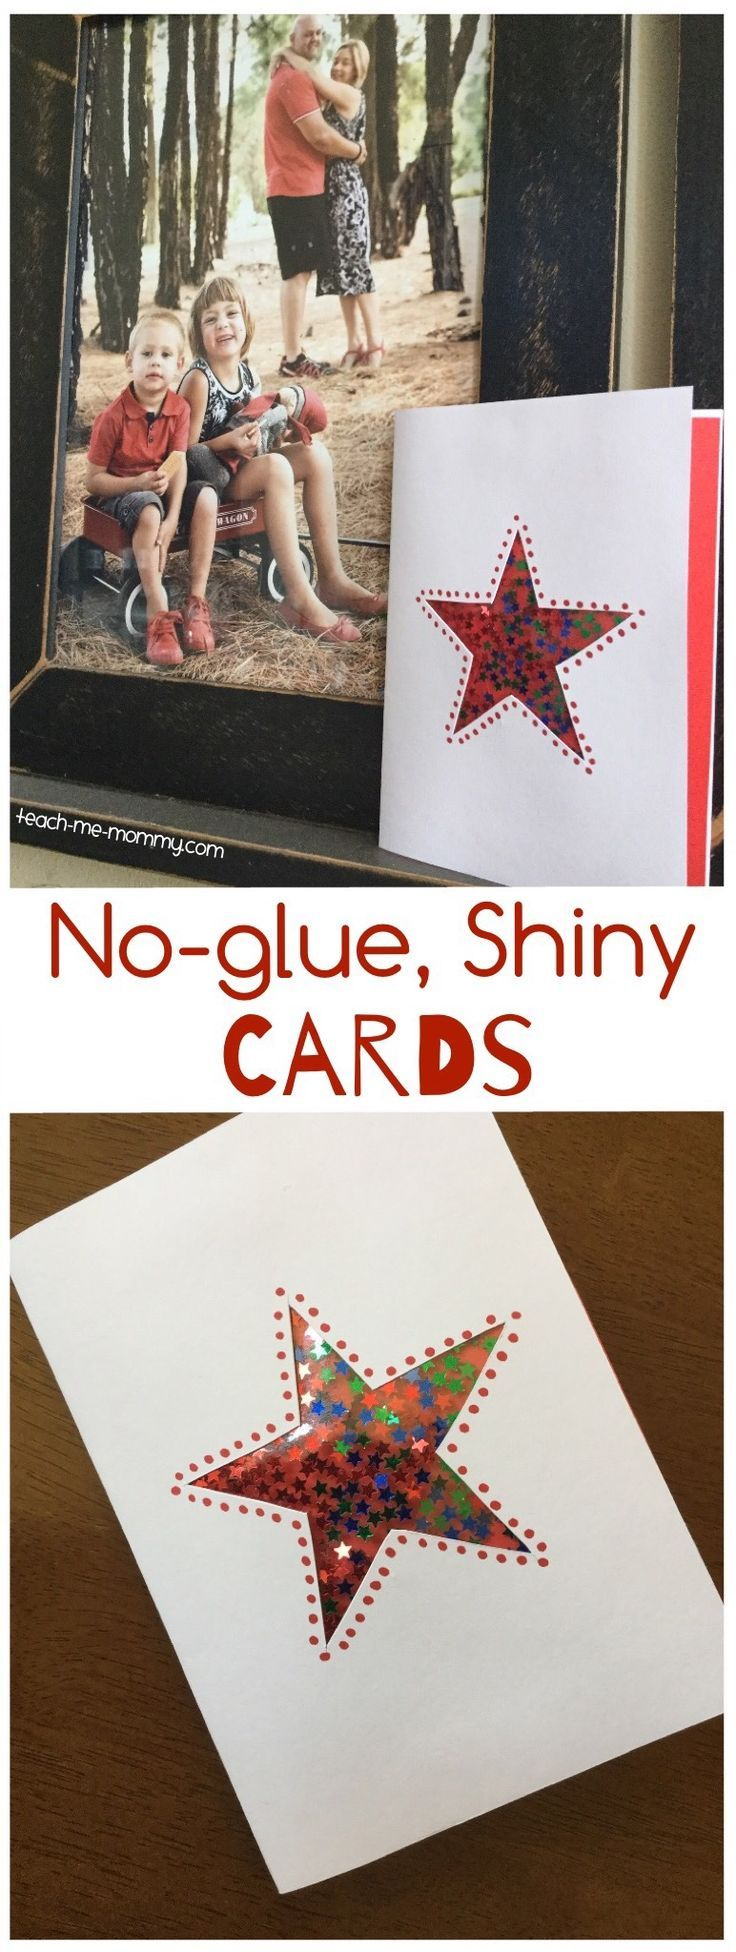 No-glue, Shiny Cards | Christmas For Families | Pinterest | Cards ...